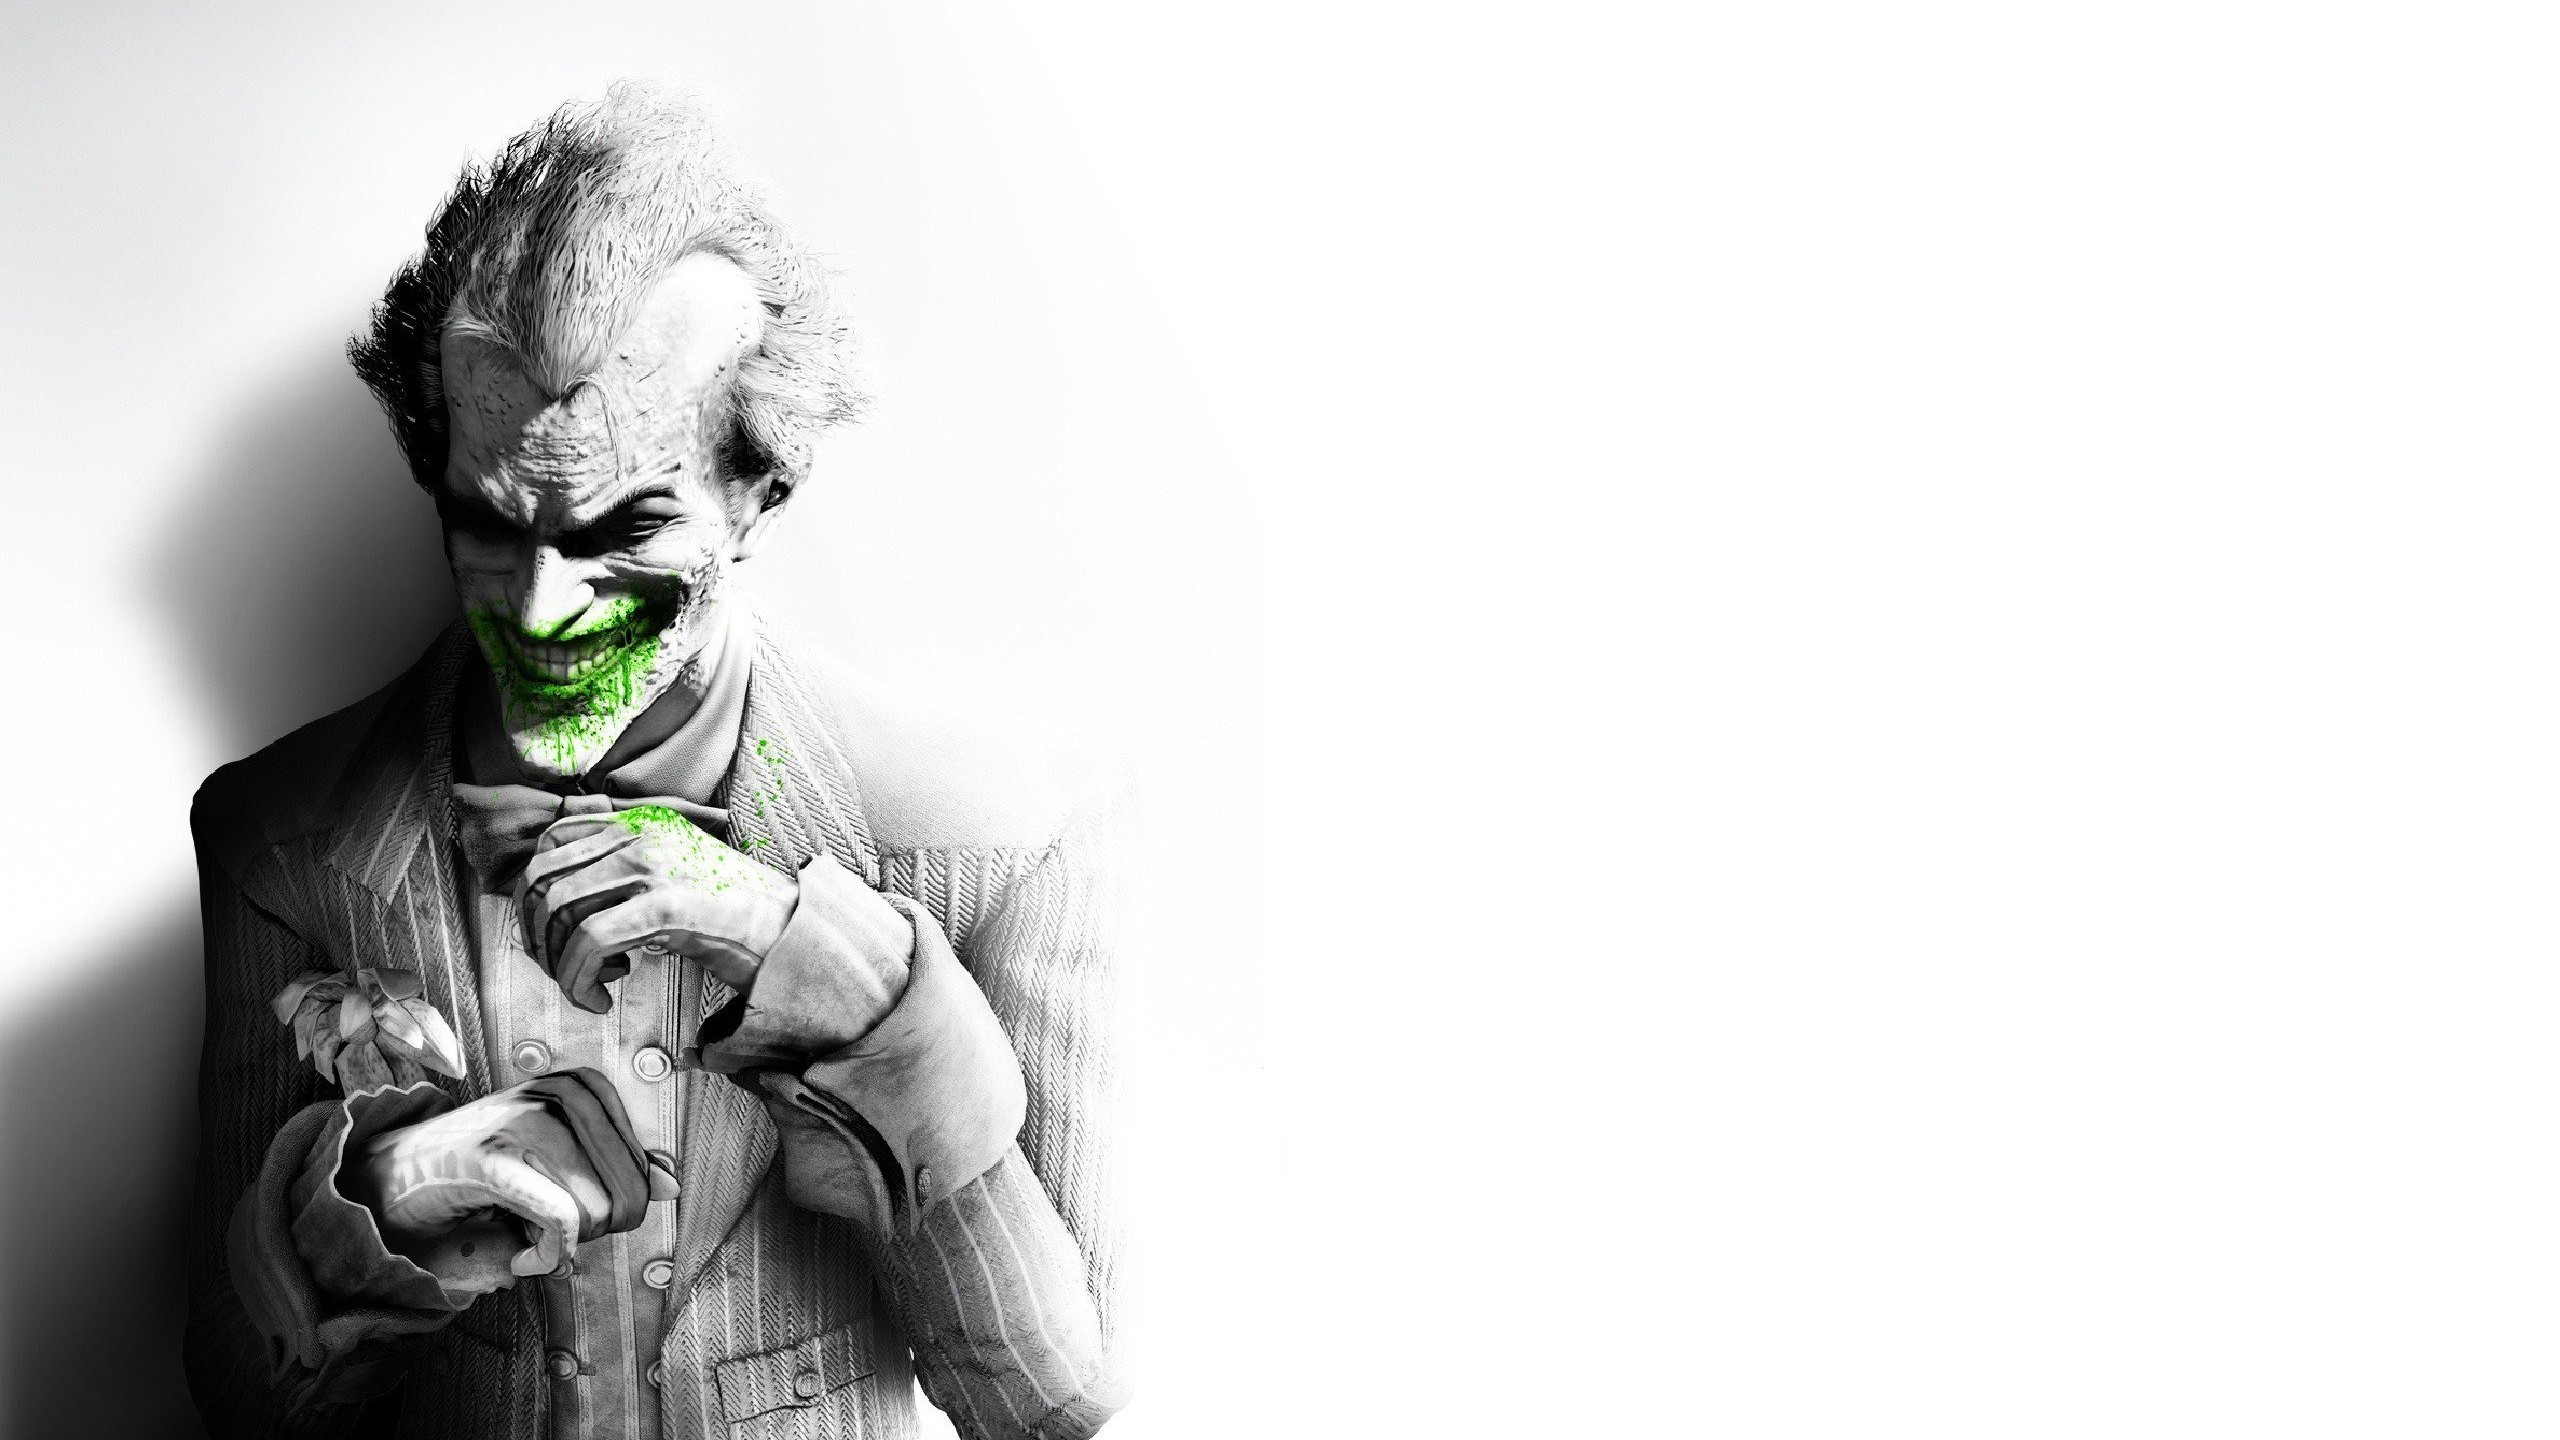 The Joker, Batman Arkham City Wallpaper for Desktop 2560x1440